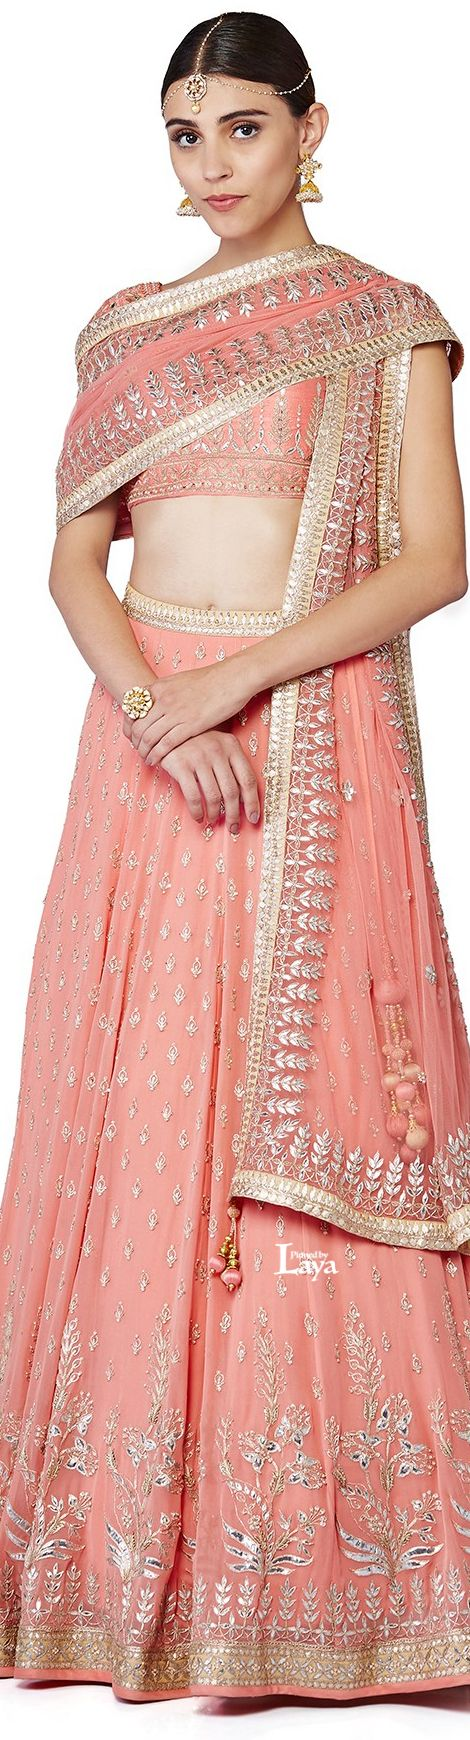 Anita Dongre 2016 collection | Beautiful peach shade ensemble for your wedding closet | Best of India's Fashion